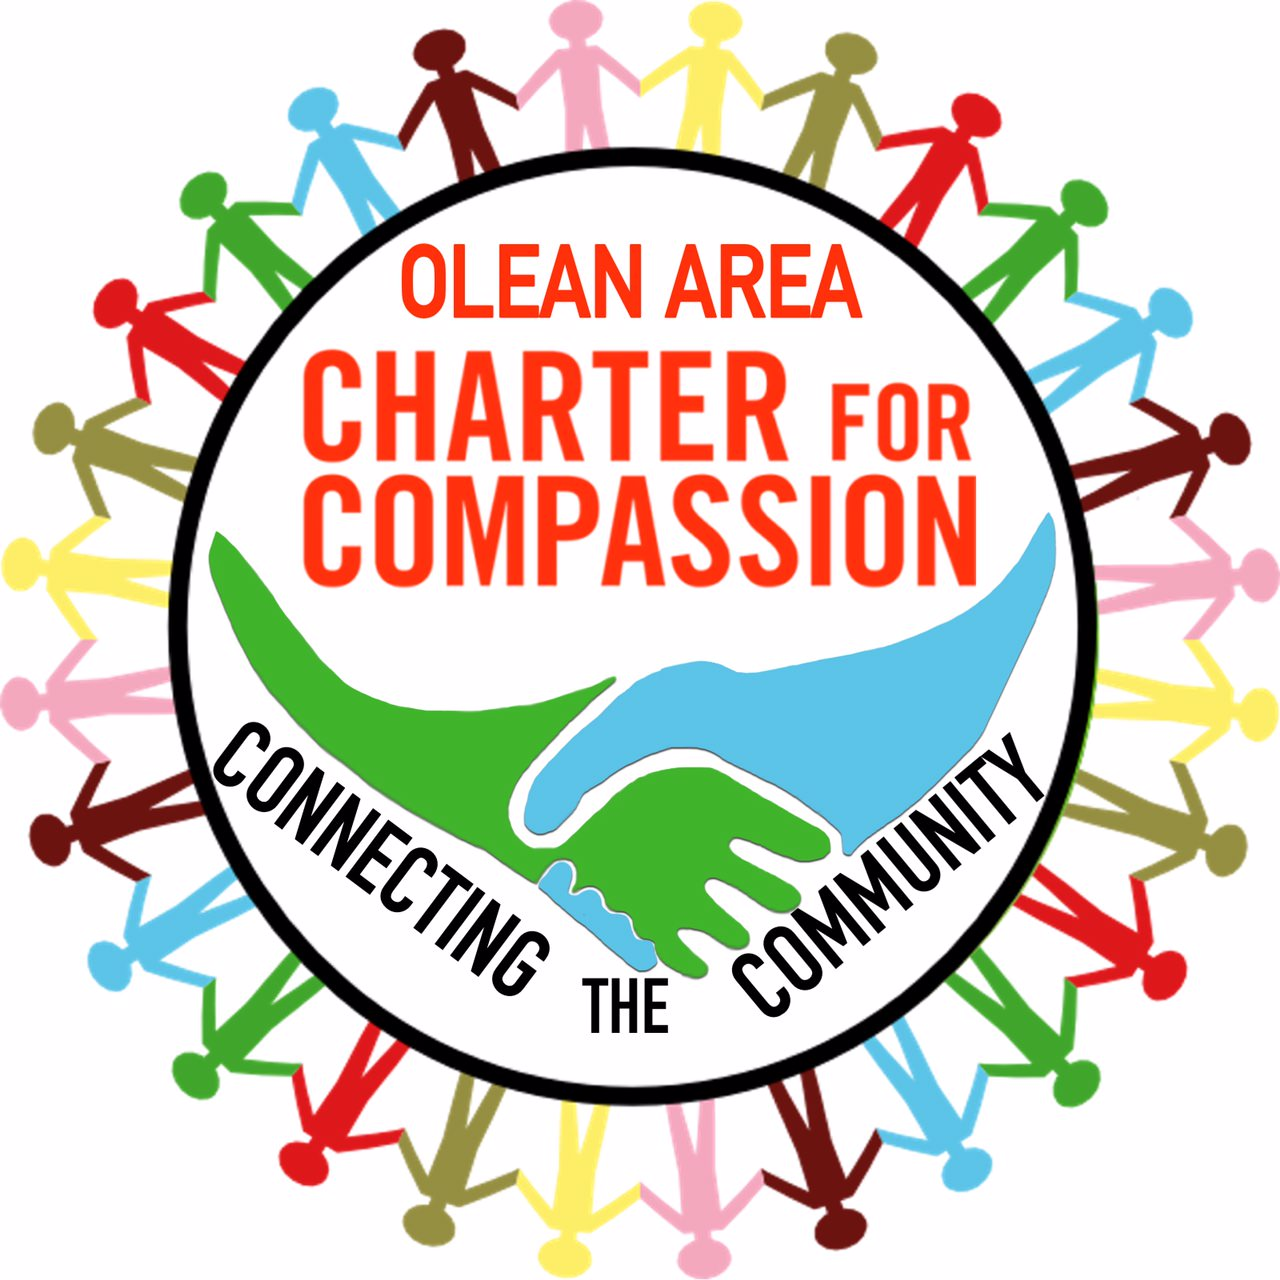 59edfb98eed36 charter for compassion